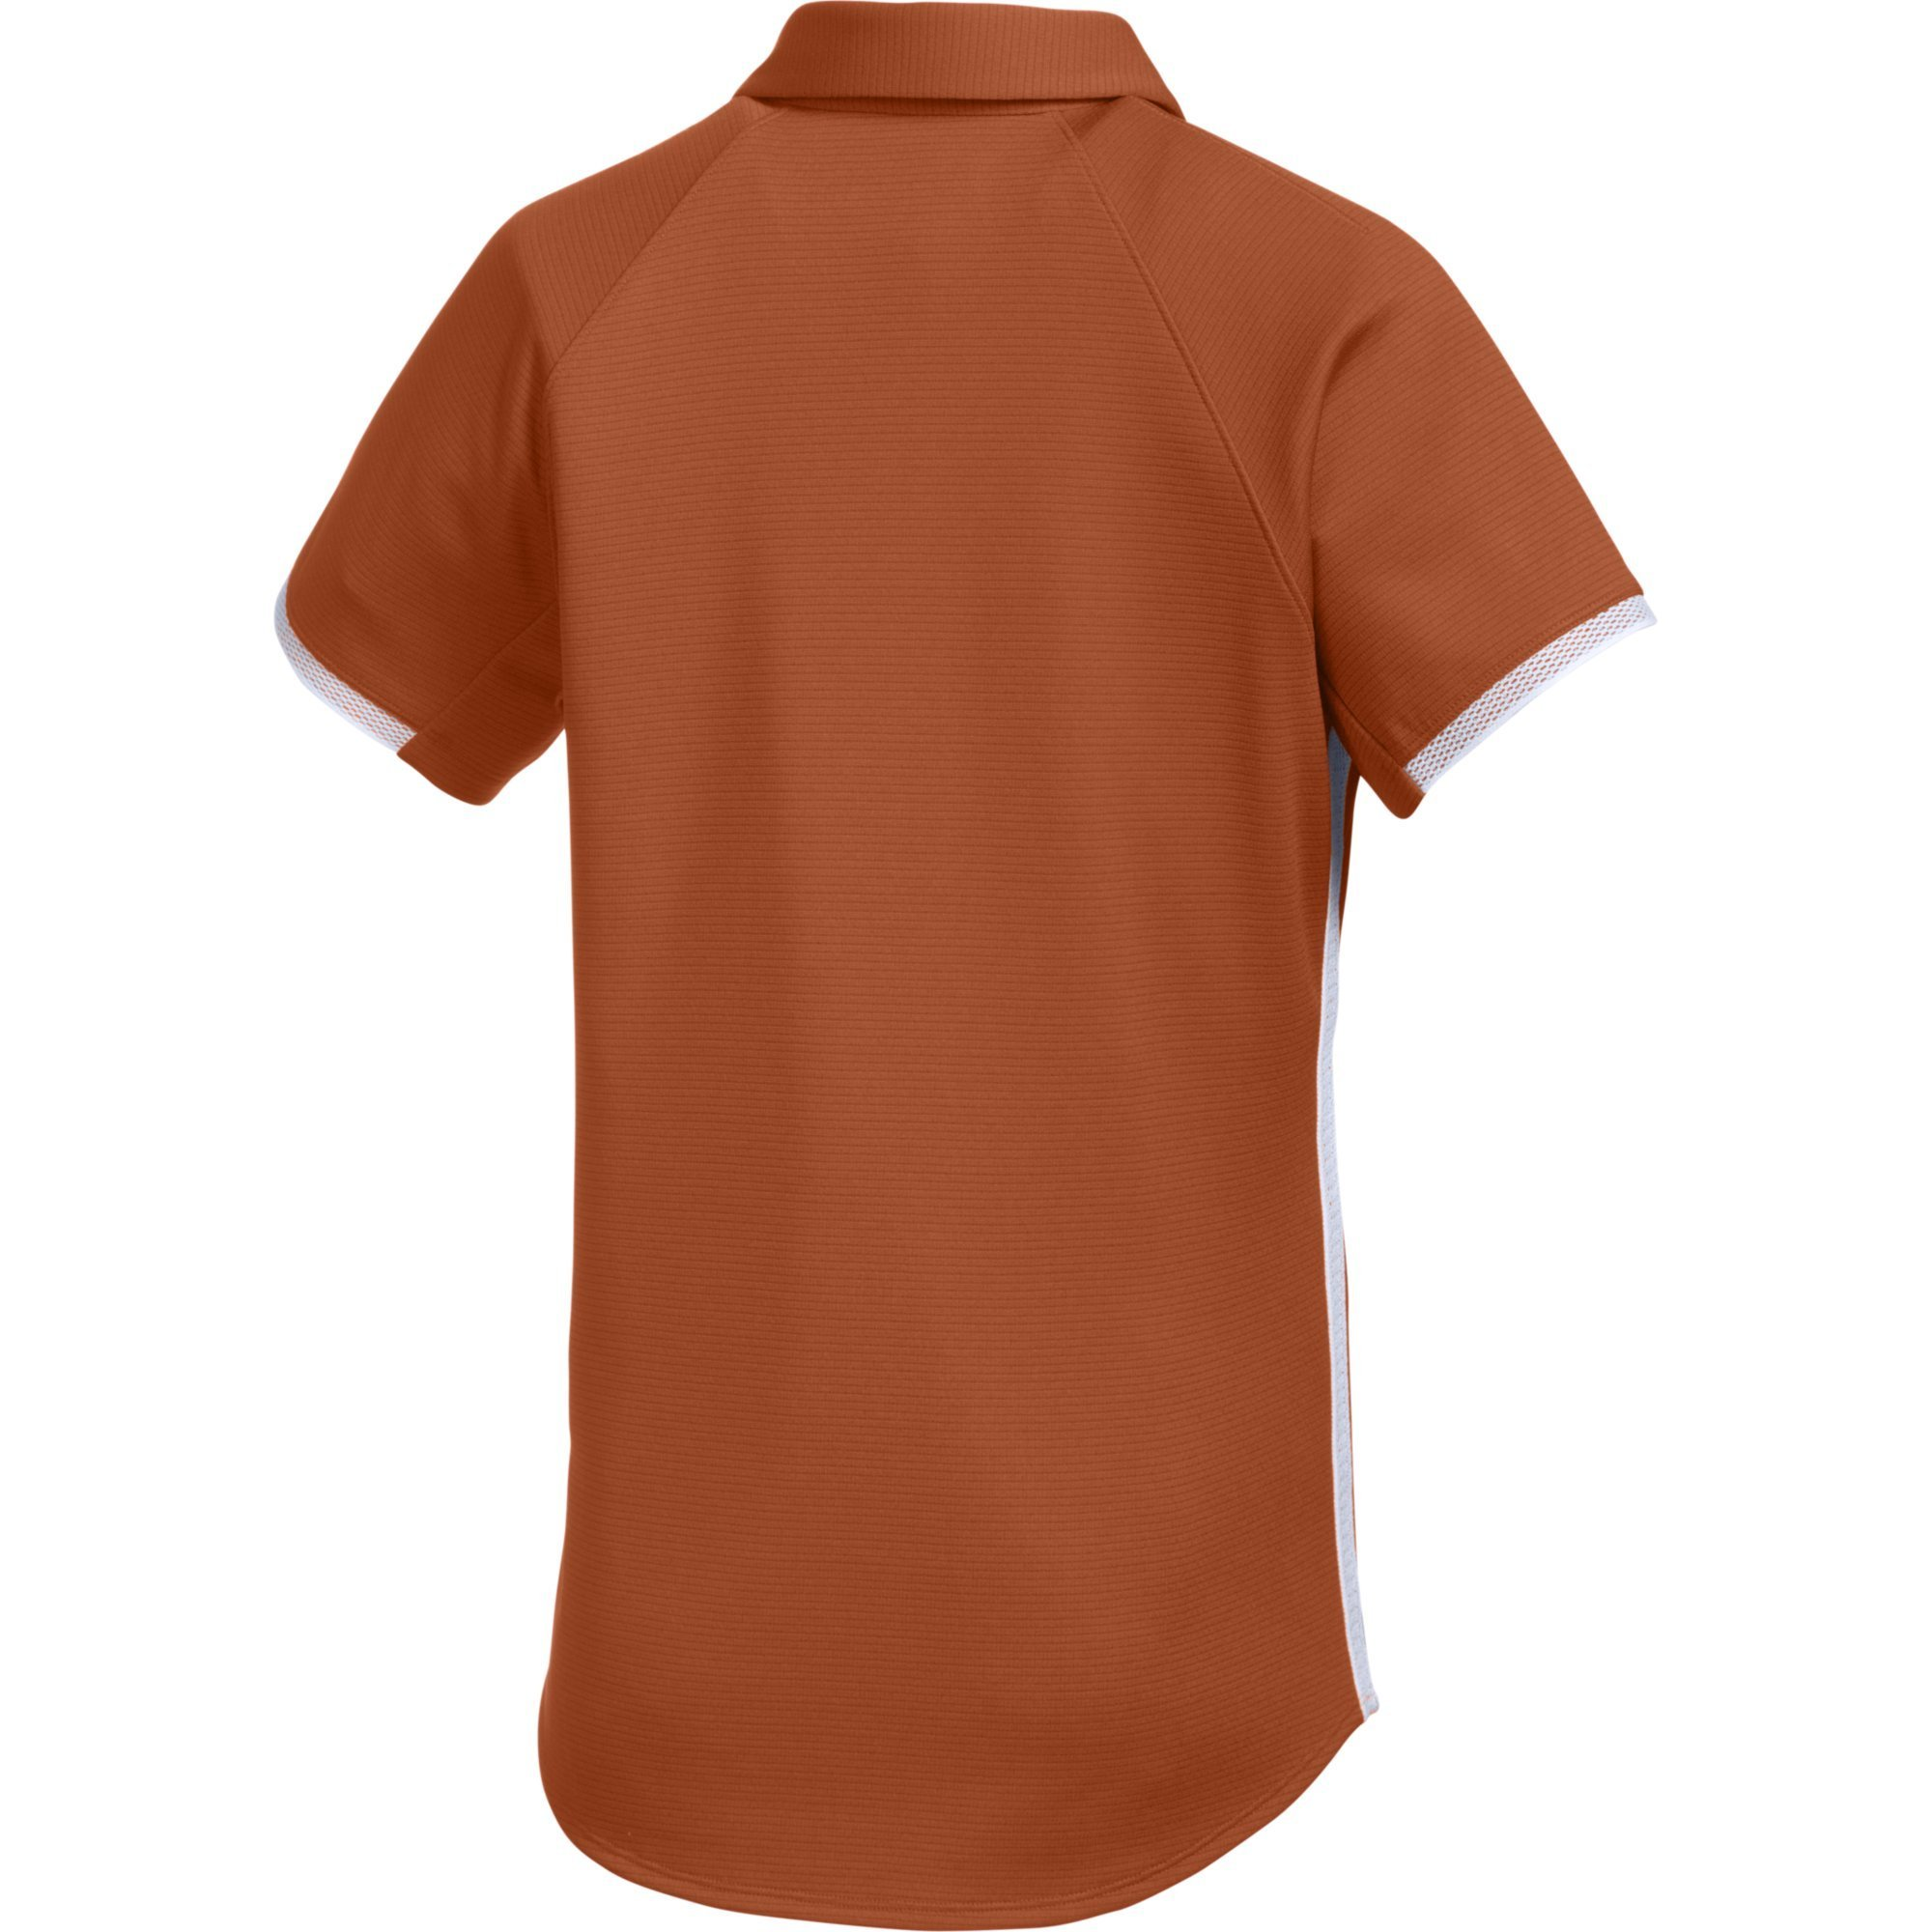 Under Armour Women's UA Rival Polo (X-Large, Texas Orange) by Under Armour (Image #2)